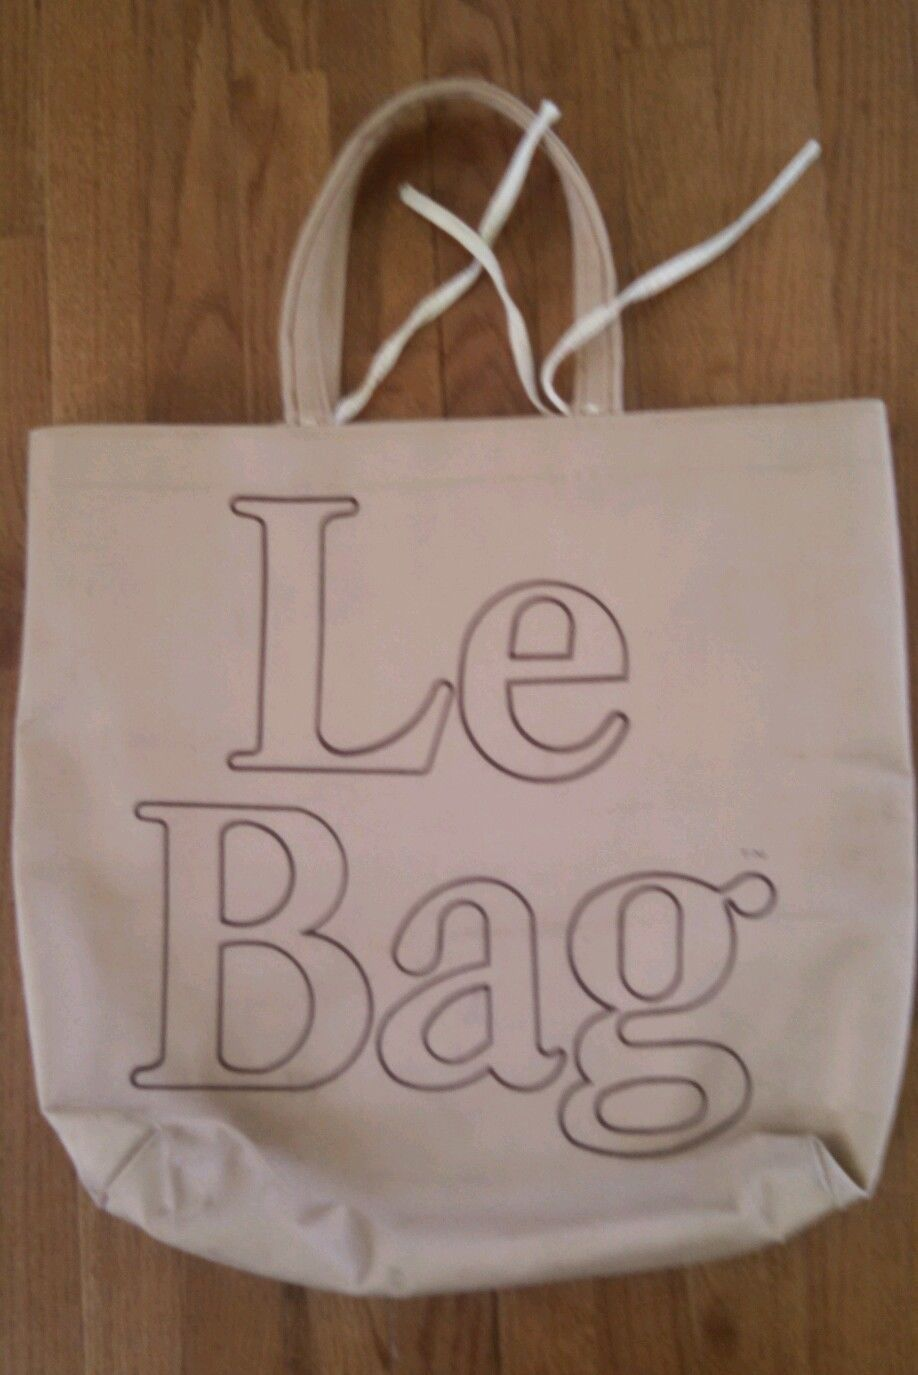 Vintage Le Bag Tote Canvas Beige Tan 1980 S 80s Reusable Large Typographic Ebay